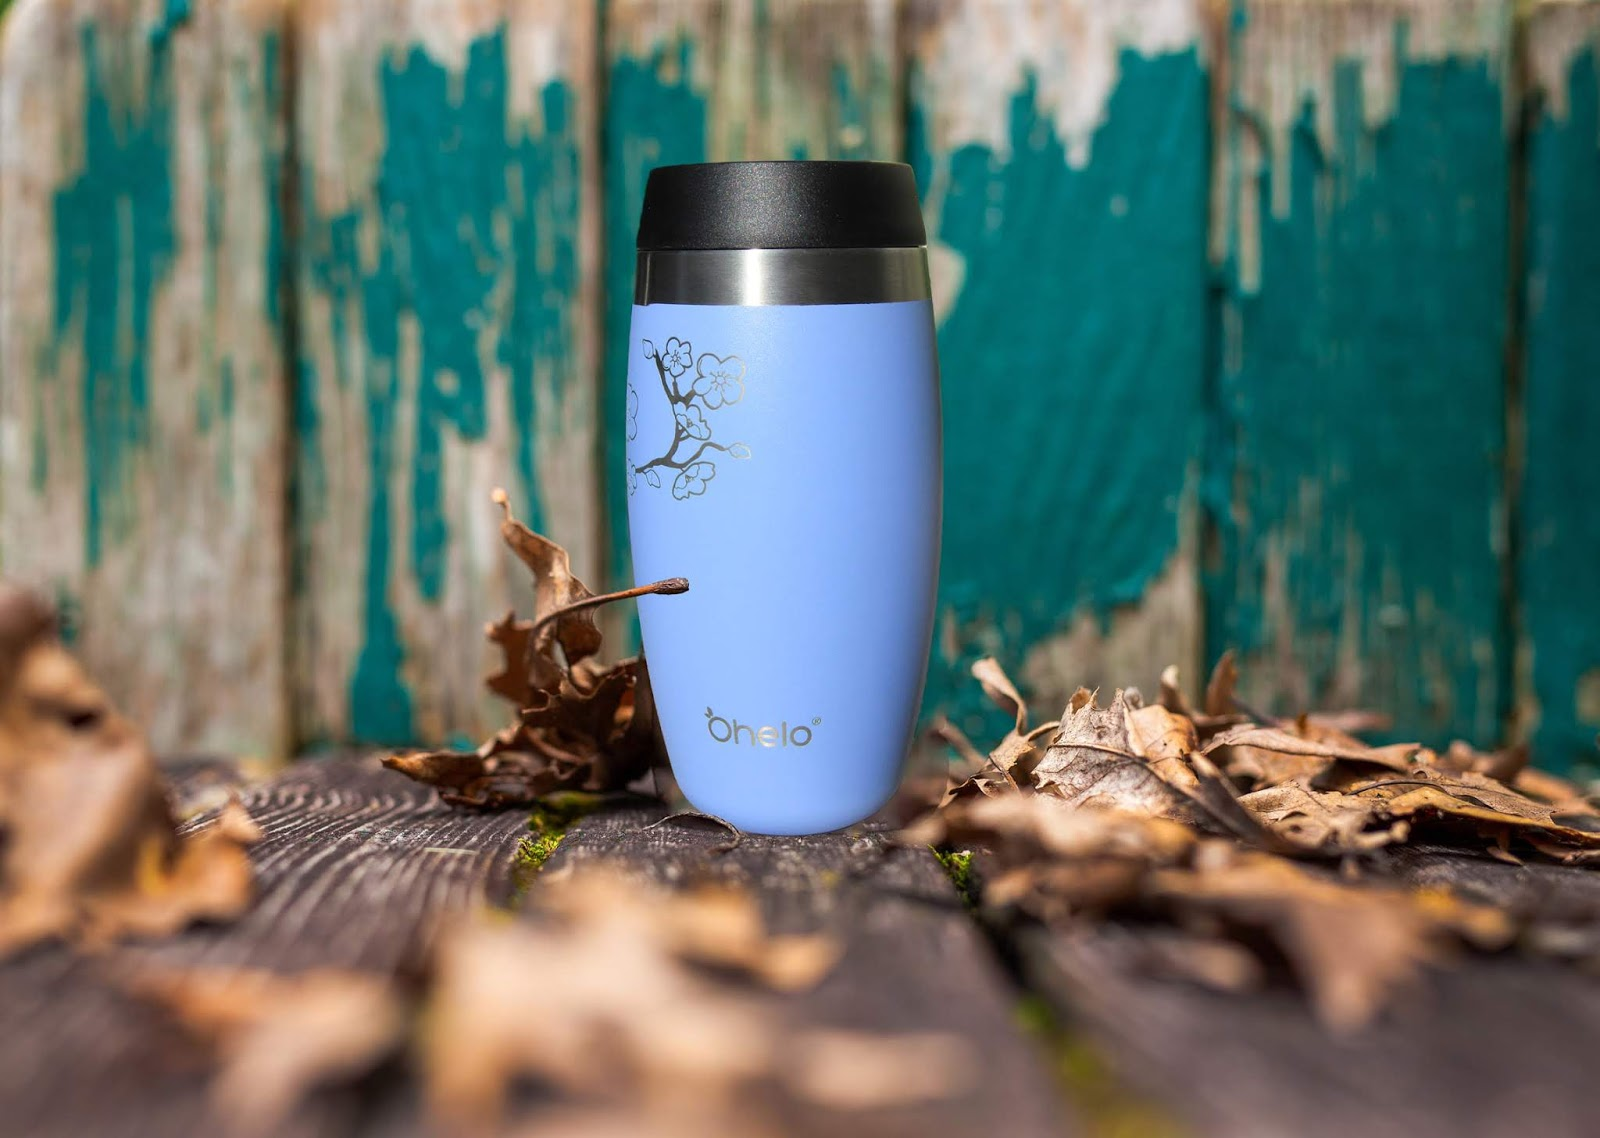 Ohelo leakproof bottles and travel cups